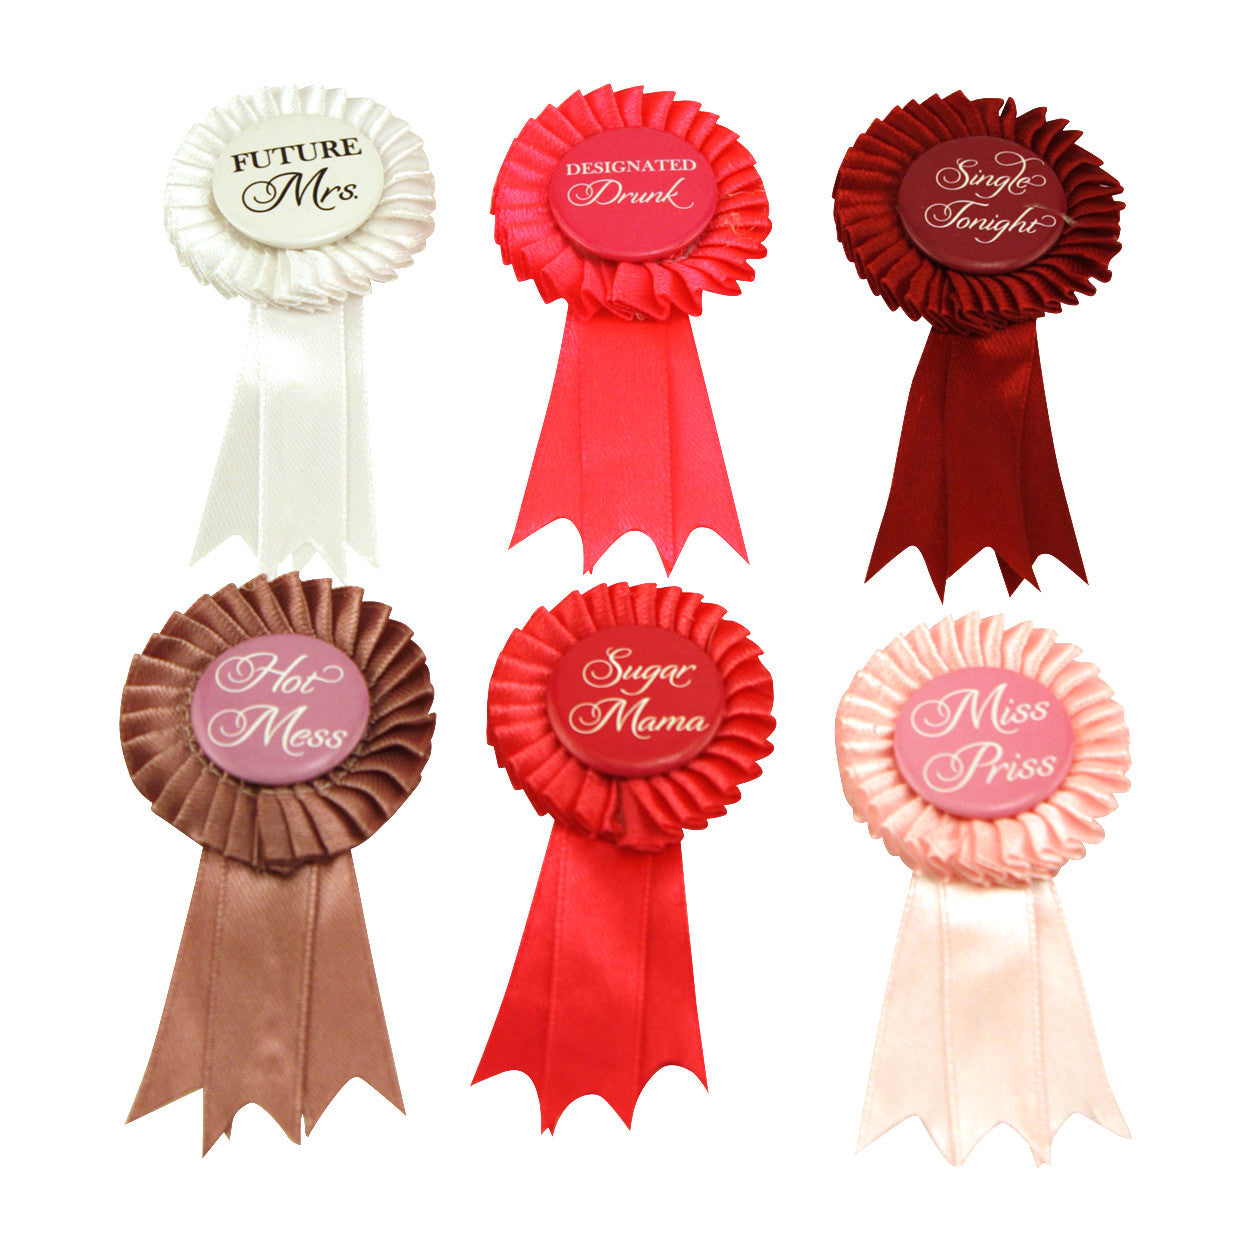 Award Ribbons for Party Guests